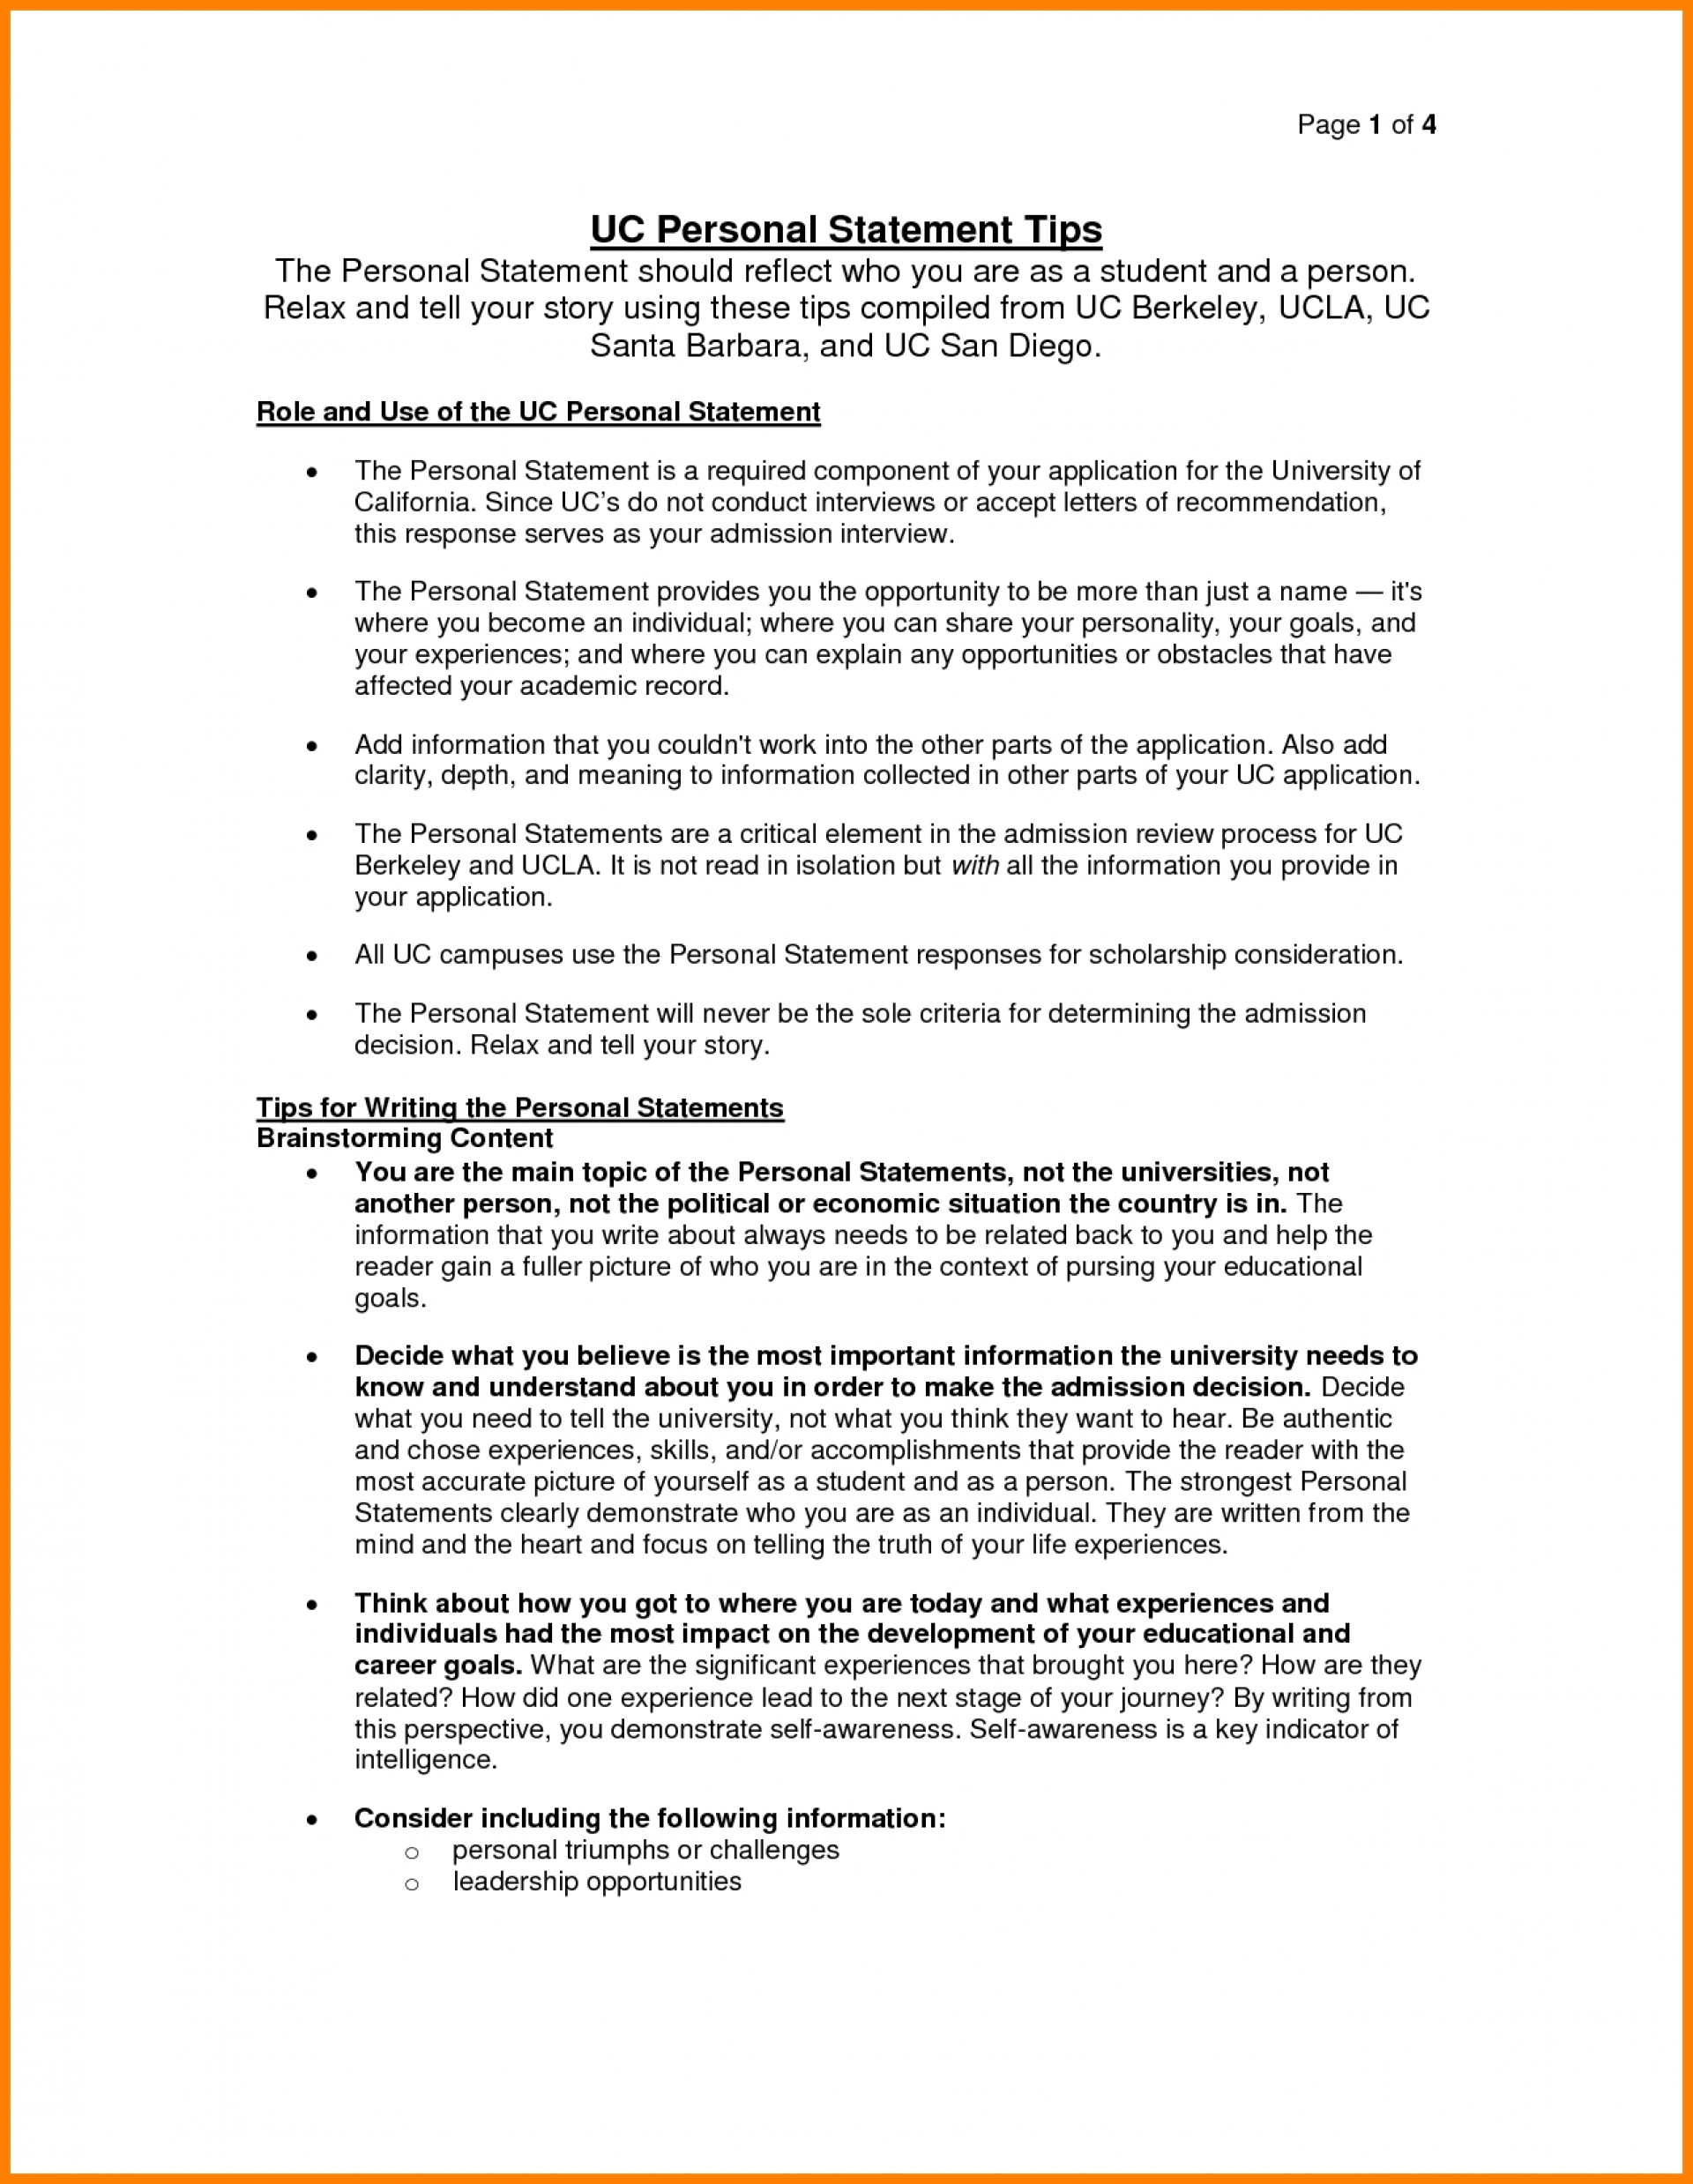 002 Essay Prompts For Colleges Writings And Essays Uc Best Personal Statement Samples Berkeley Intende Coalition Ucla List Stanford Texas Csu Harvard Unique College Writing Esl Students Argumentative Expository 1920